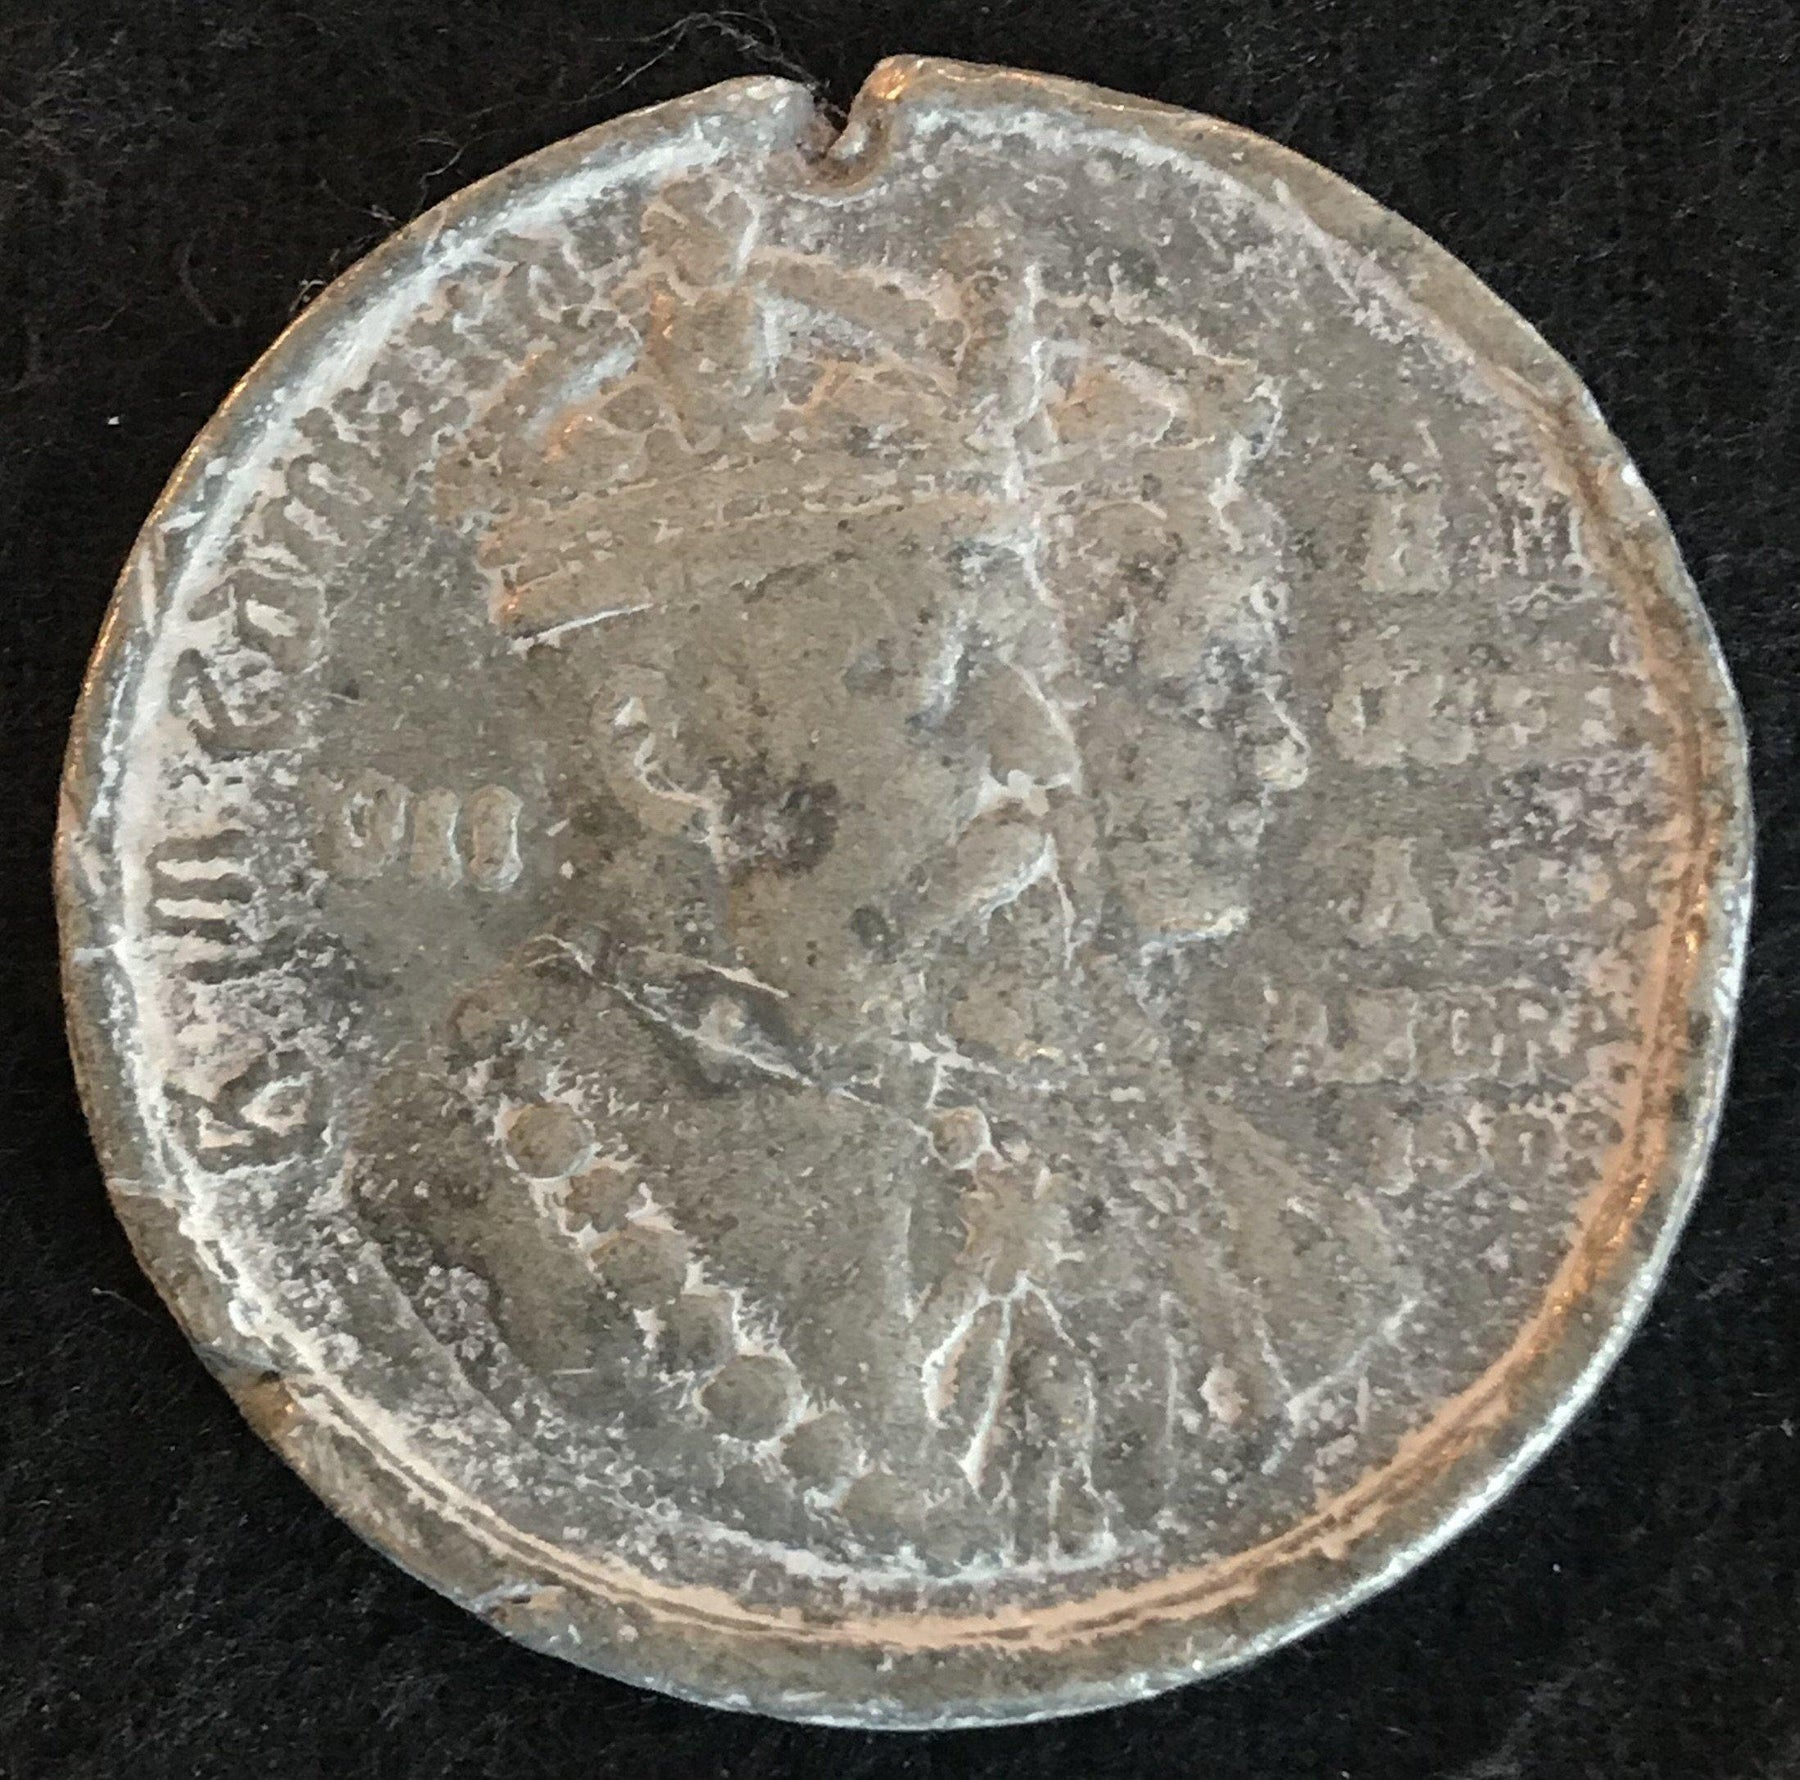 1902 British Coin: Coronation of King Edward II and Queen Alexandra for sale antique